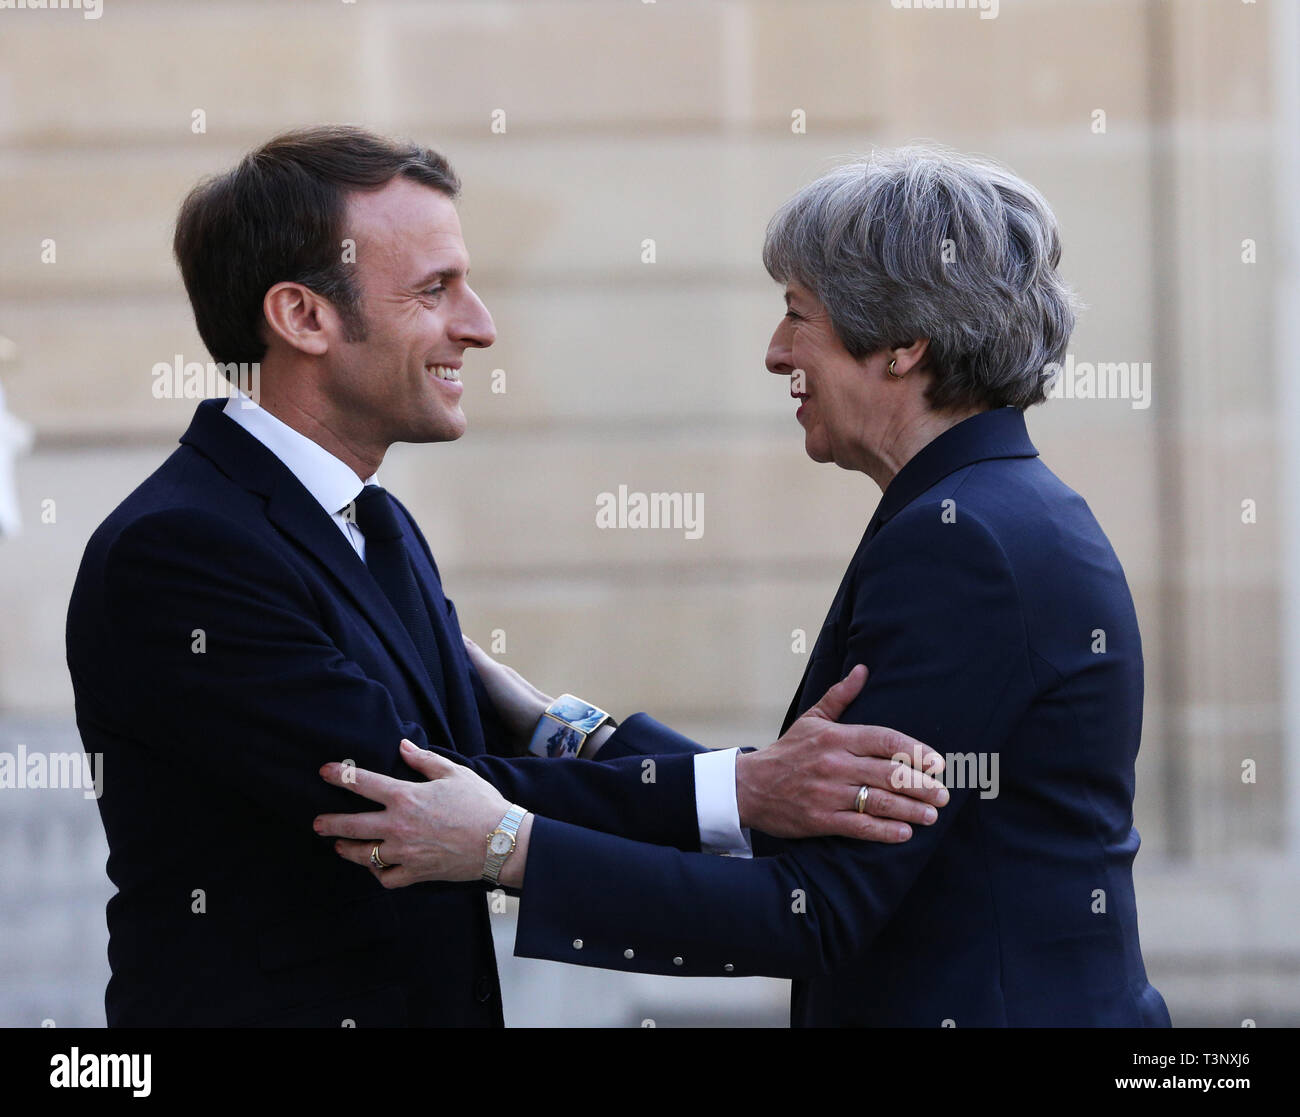 Beijing, France. 9th Apr, 2019. French President Emmanuel Macron (L) welcomes visiting British Prime Minister Theresa May at the Elysee Palace in Paris, France, April 9, 2019. Credit: Gao Jing/Xinhua/Alamy Live News - Stock Image